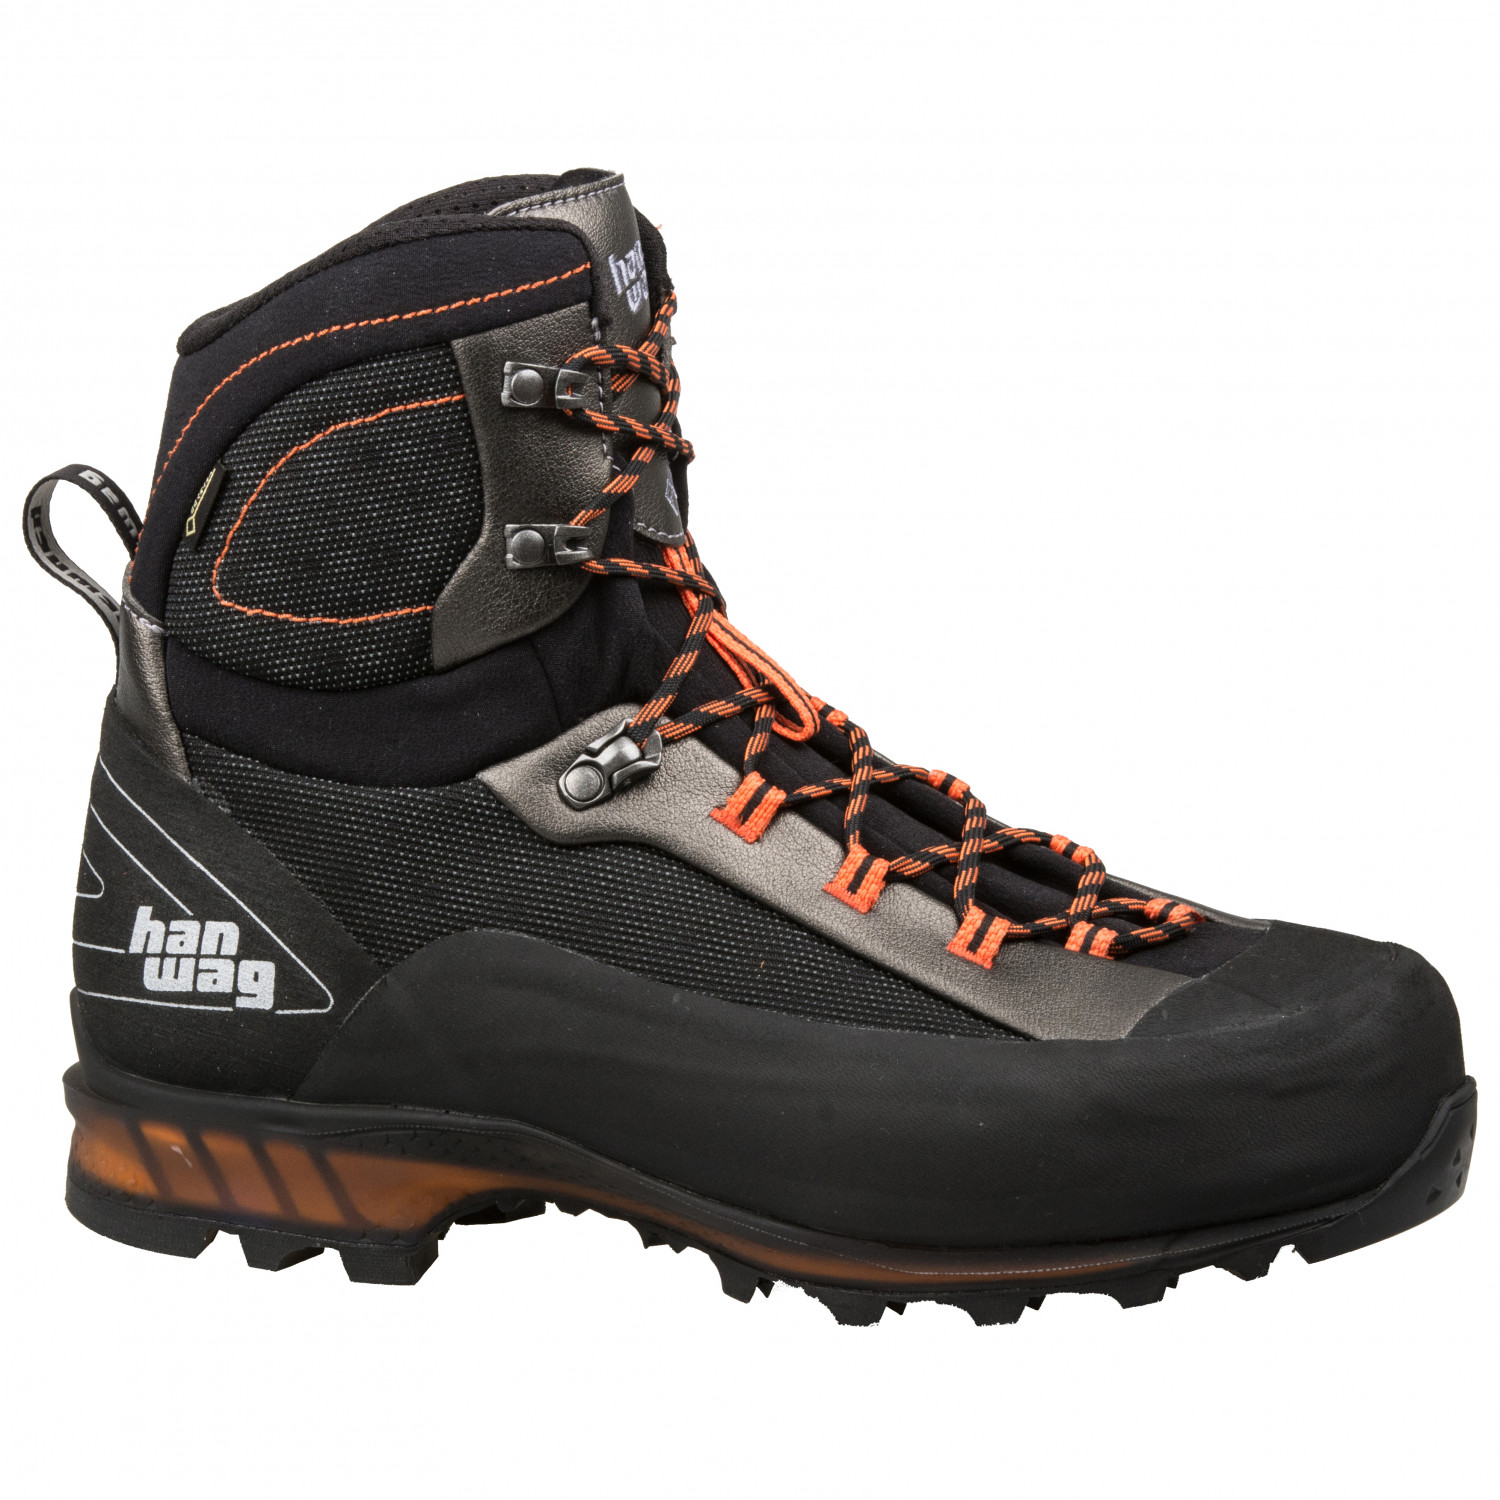 5uk Ii Ferrata Gtx Bergschuhe Hanwag Orange7 Black LqUVGSpzM